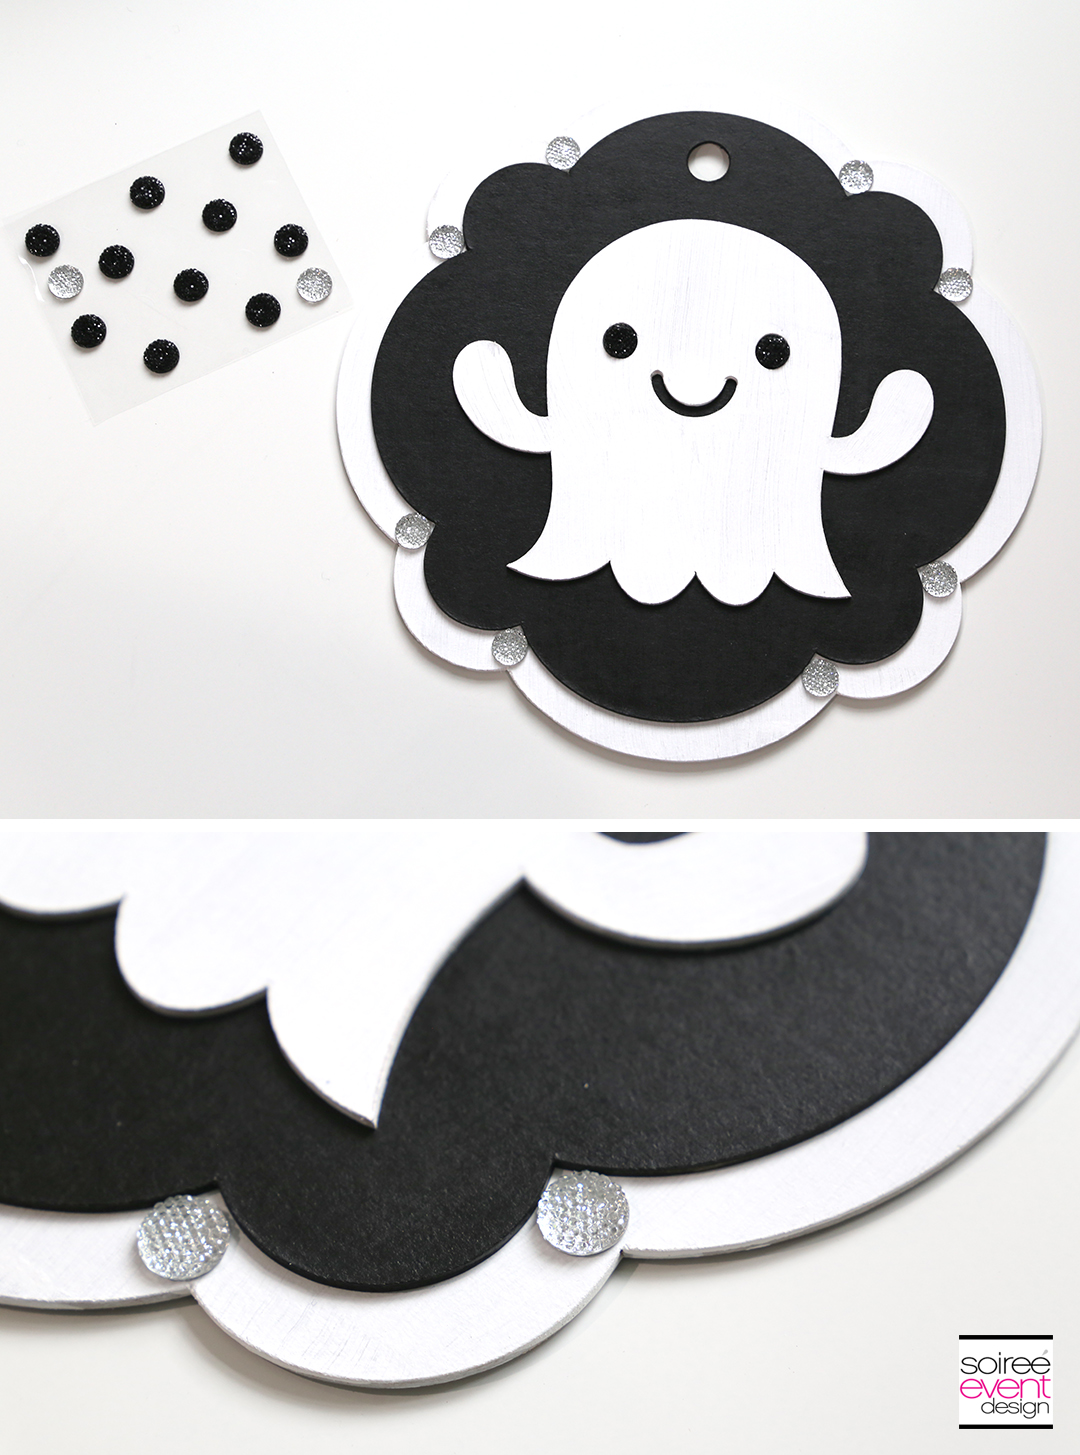 Cricut Halloween Ideas - DIY Ghost Door Sign - Step 10